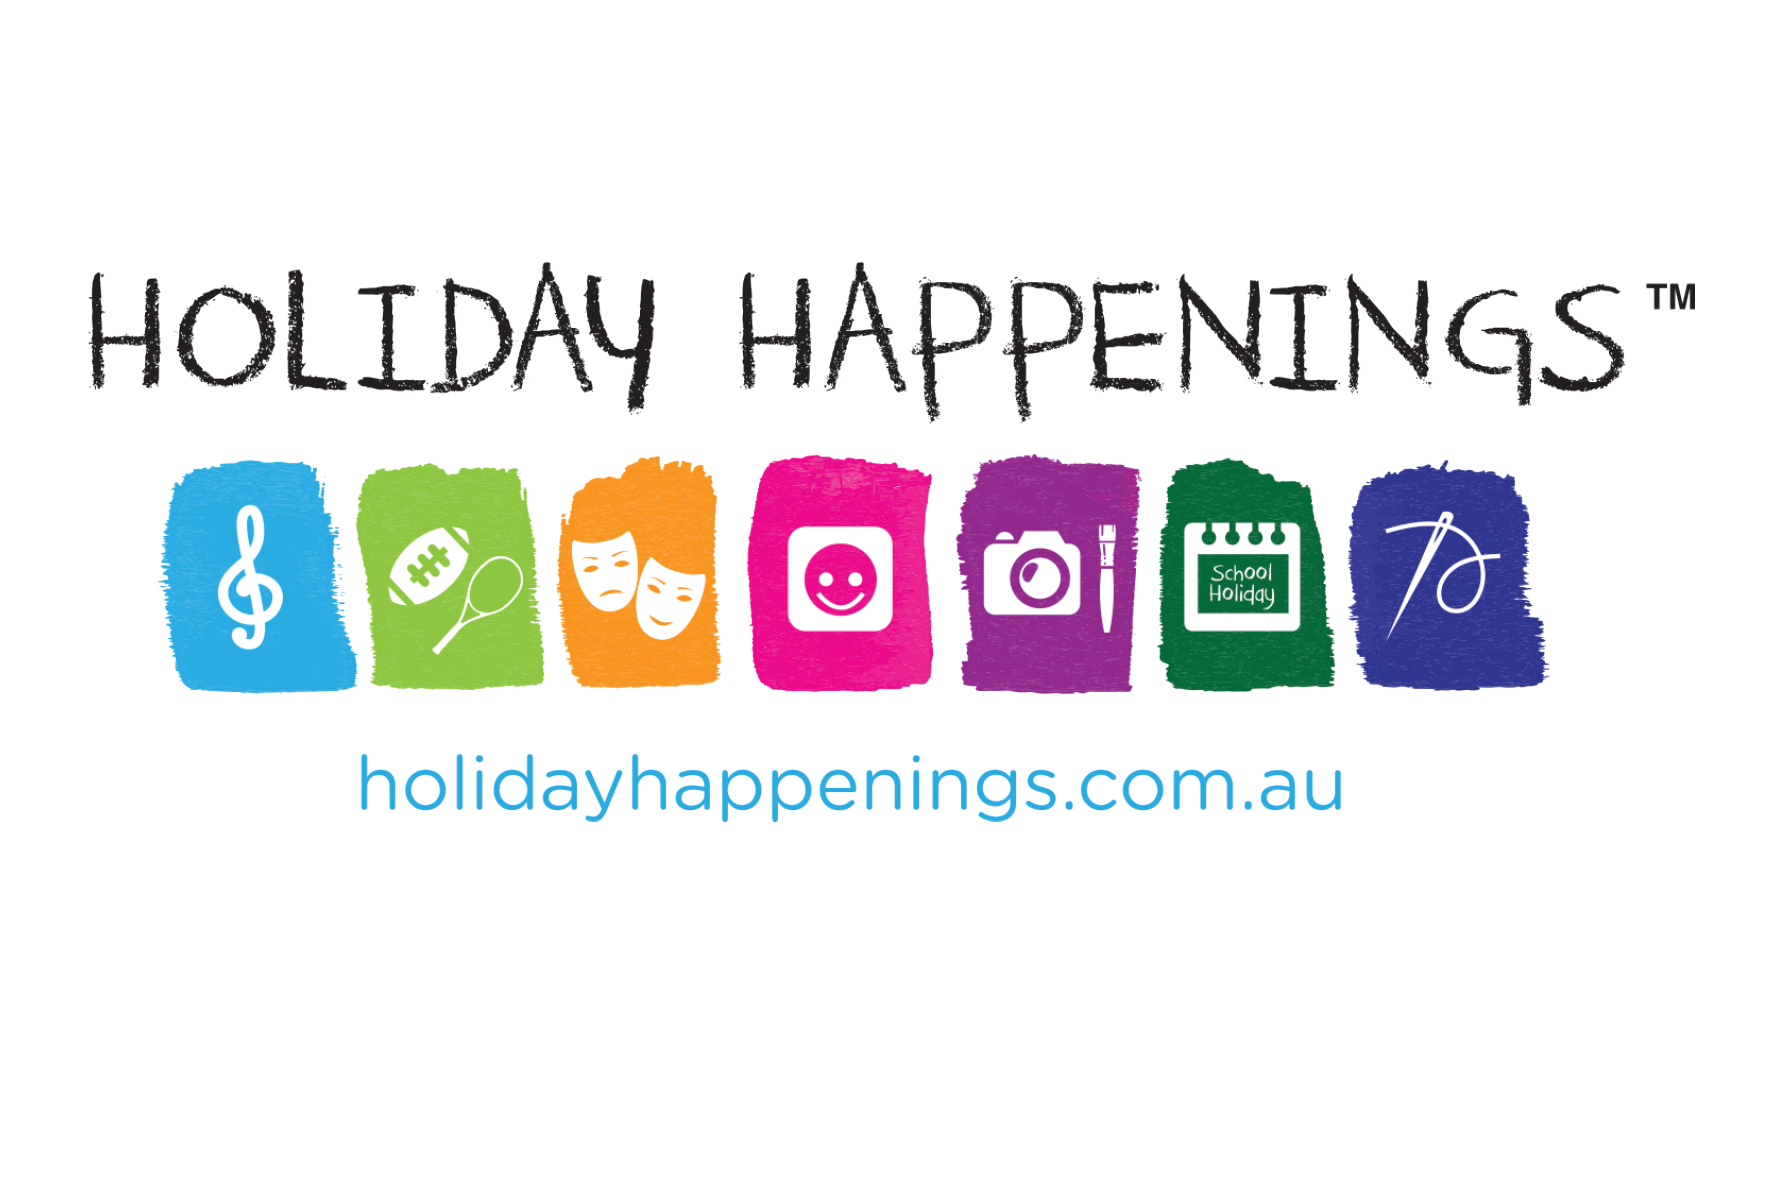 School Holidays Canberra Kids Holiday Activities Canberra Holiday Happenings